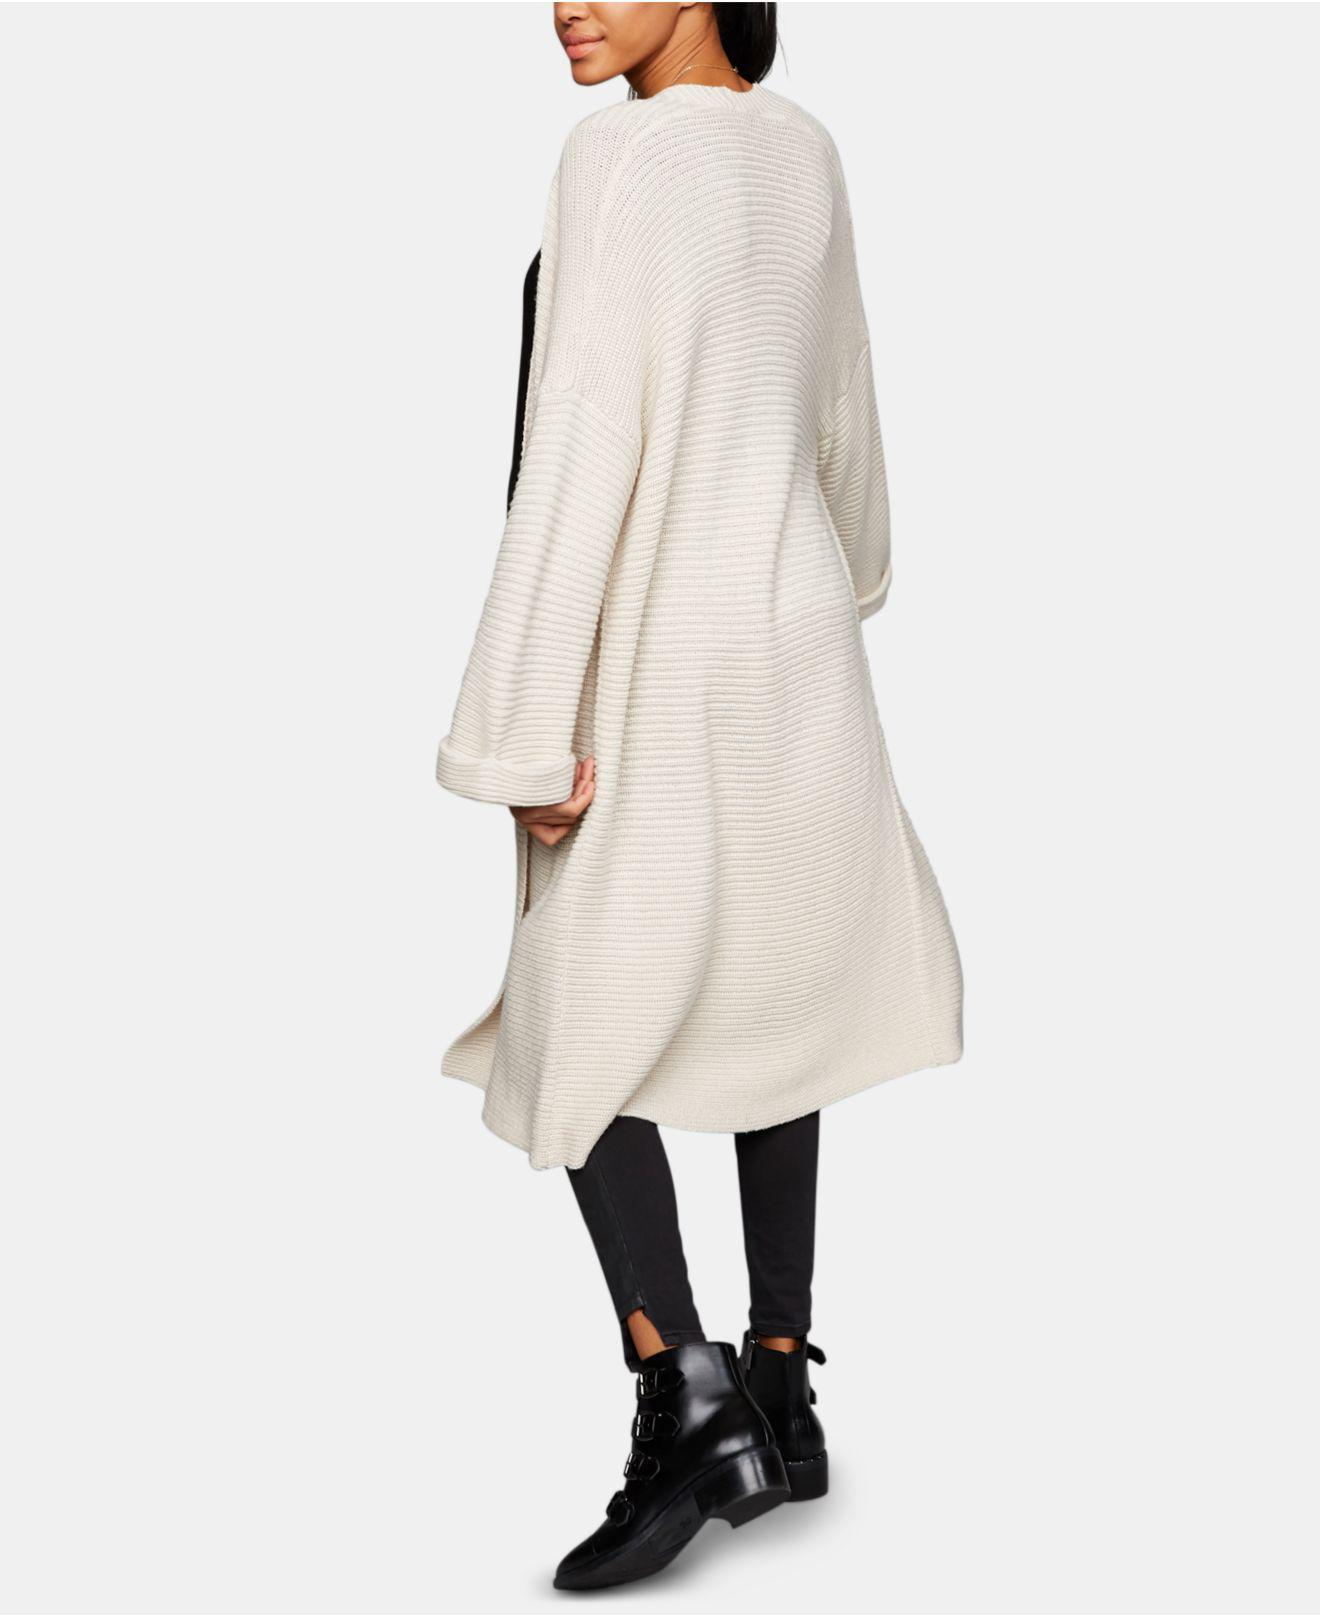 1d1529a298f20 Cupcakes And Cashmere Heavy Knit Belted Duster Maternity Coat in ...